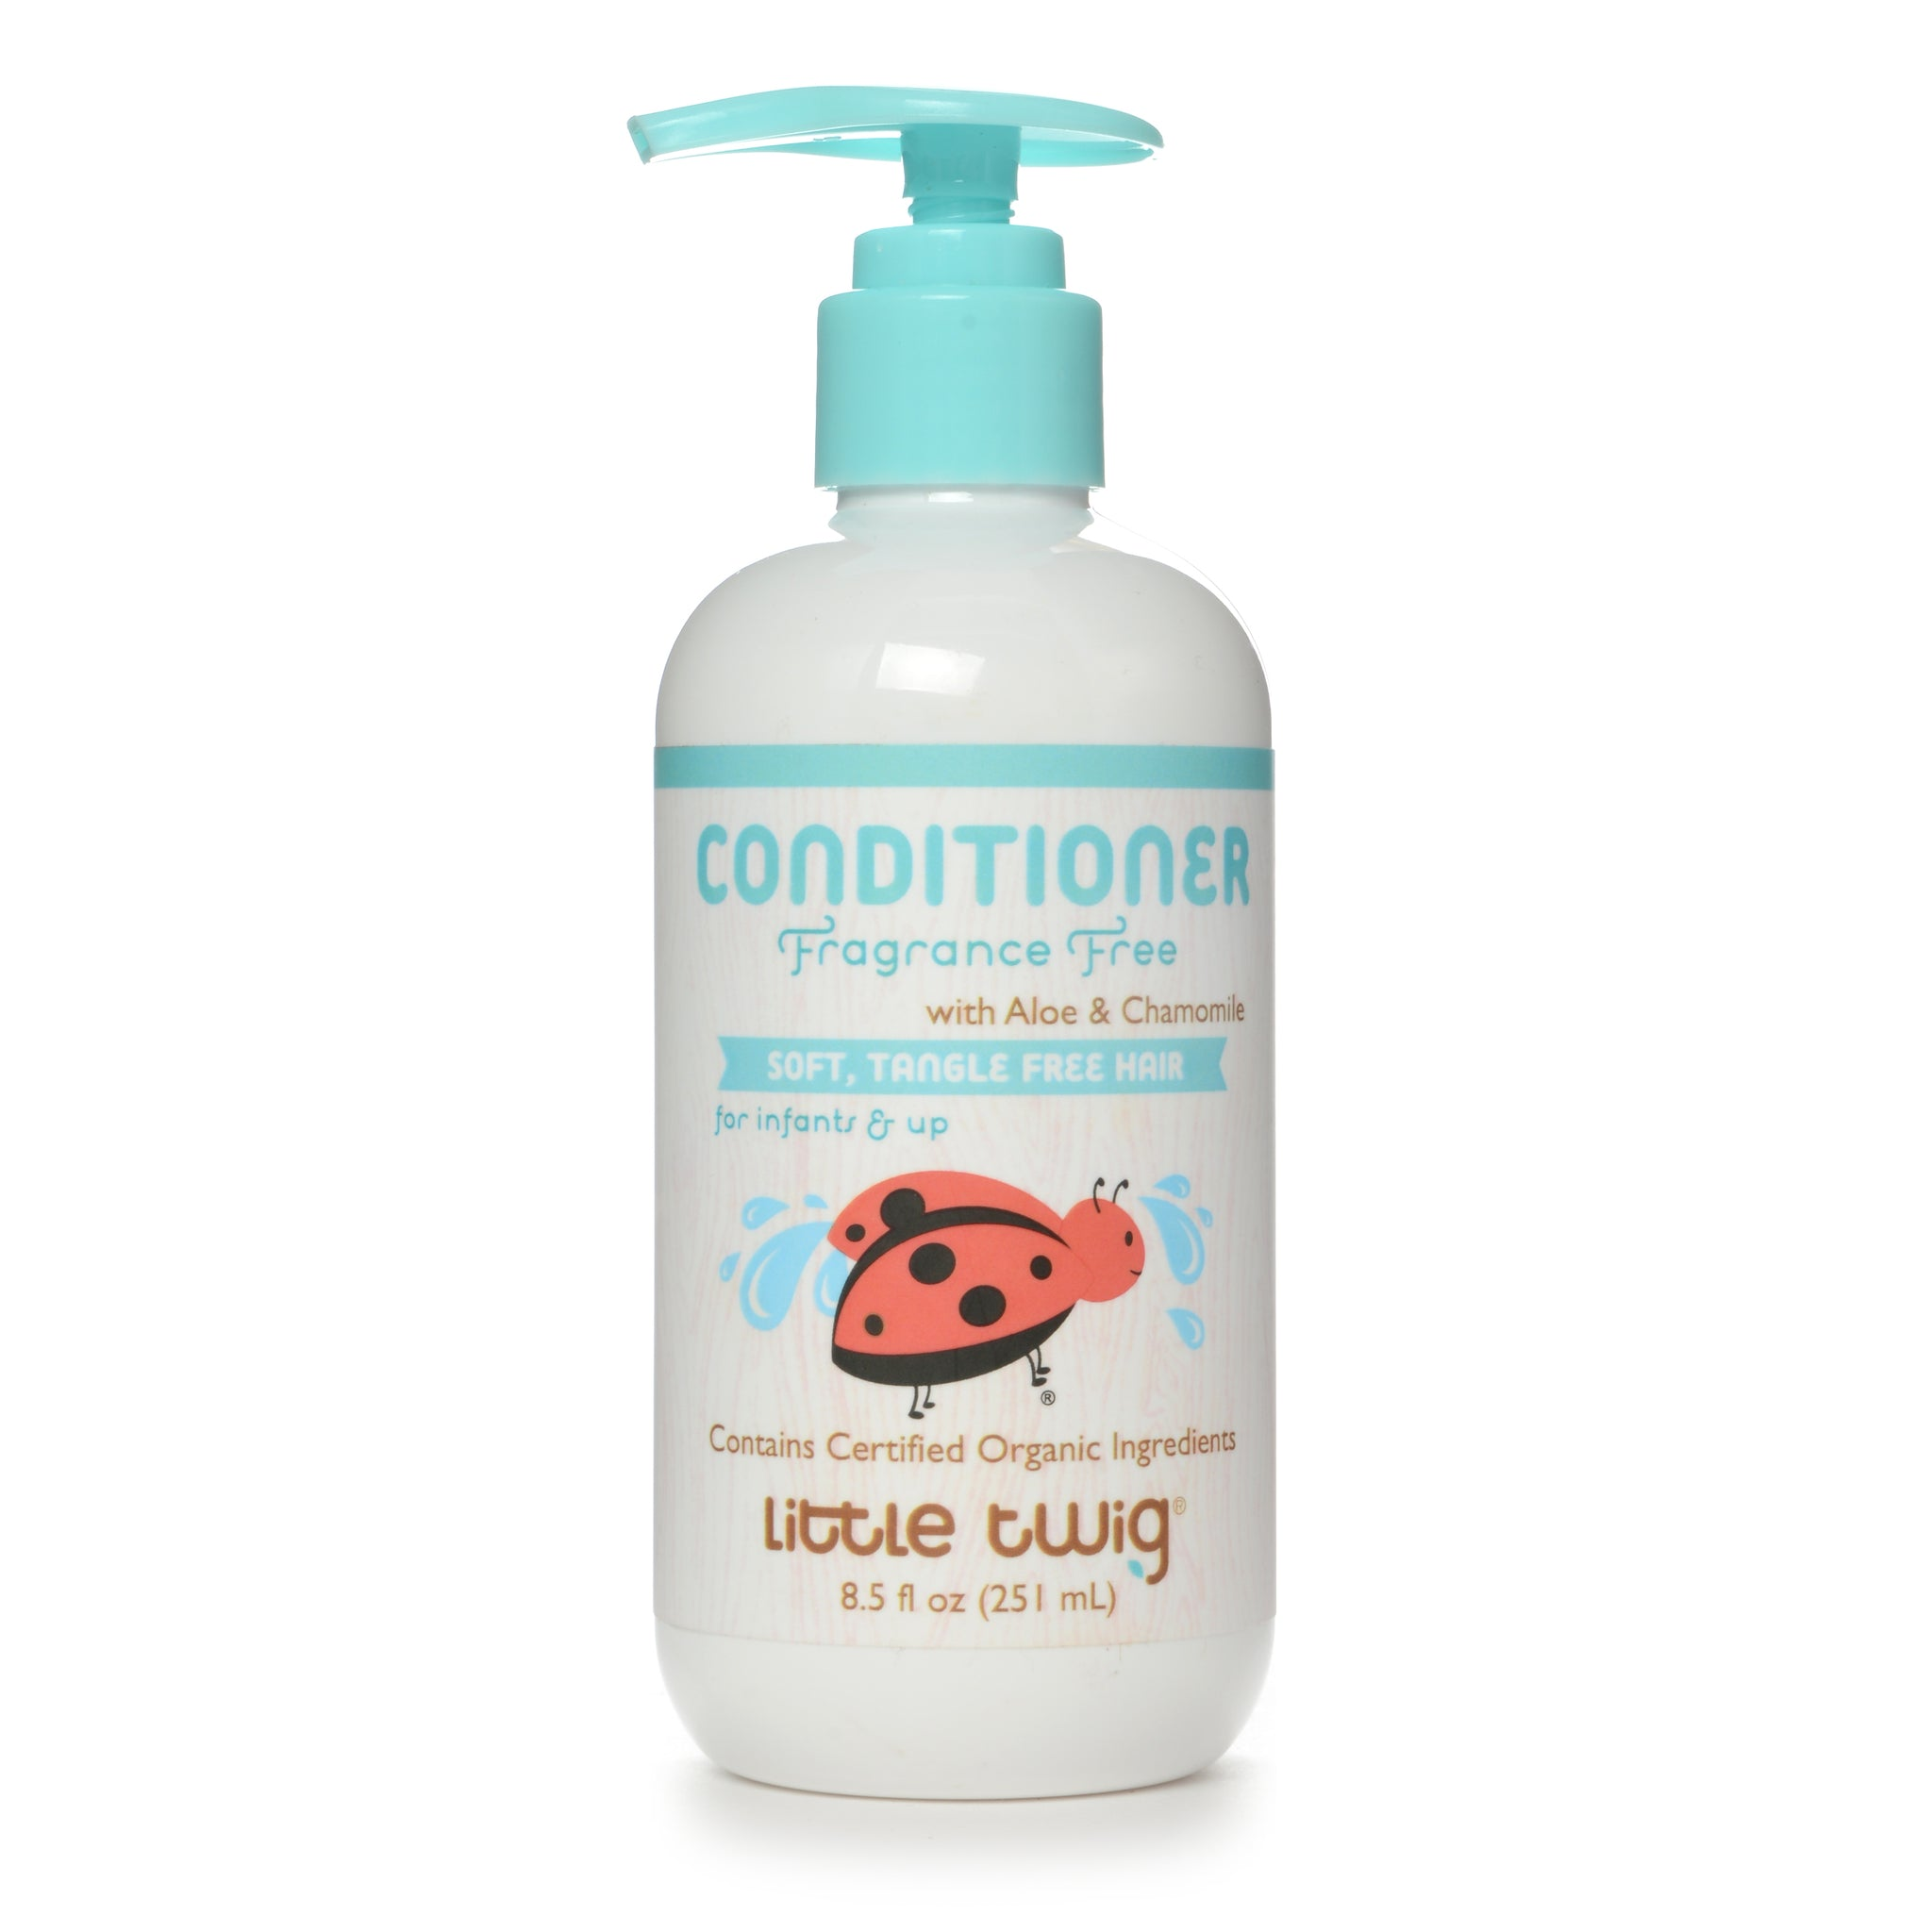 Fragrance Free Detangling Conditioner